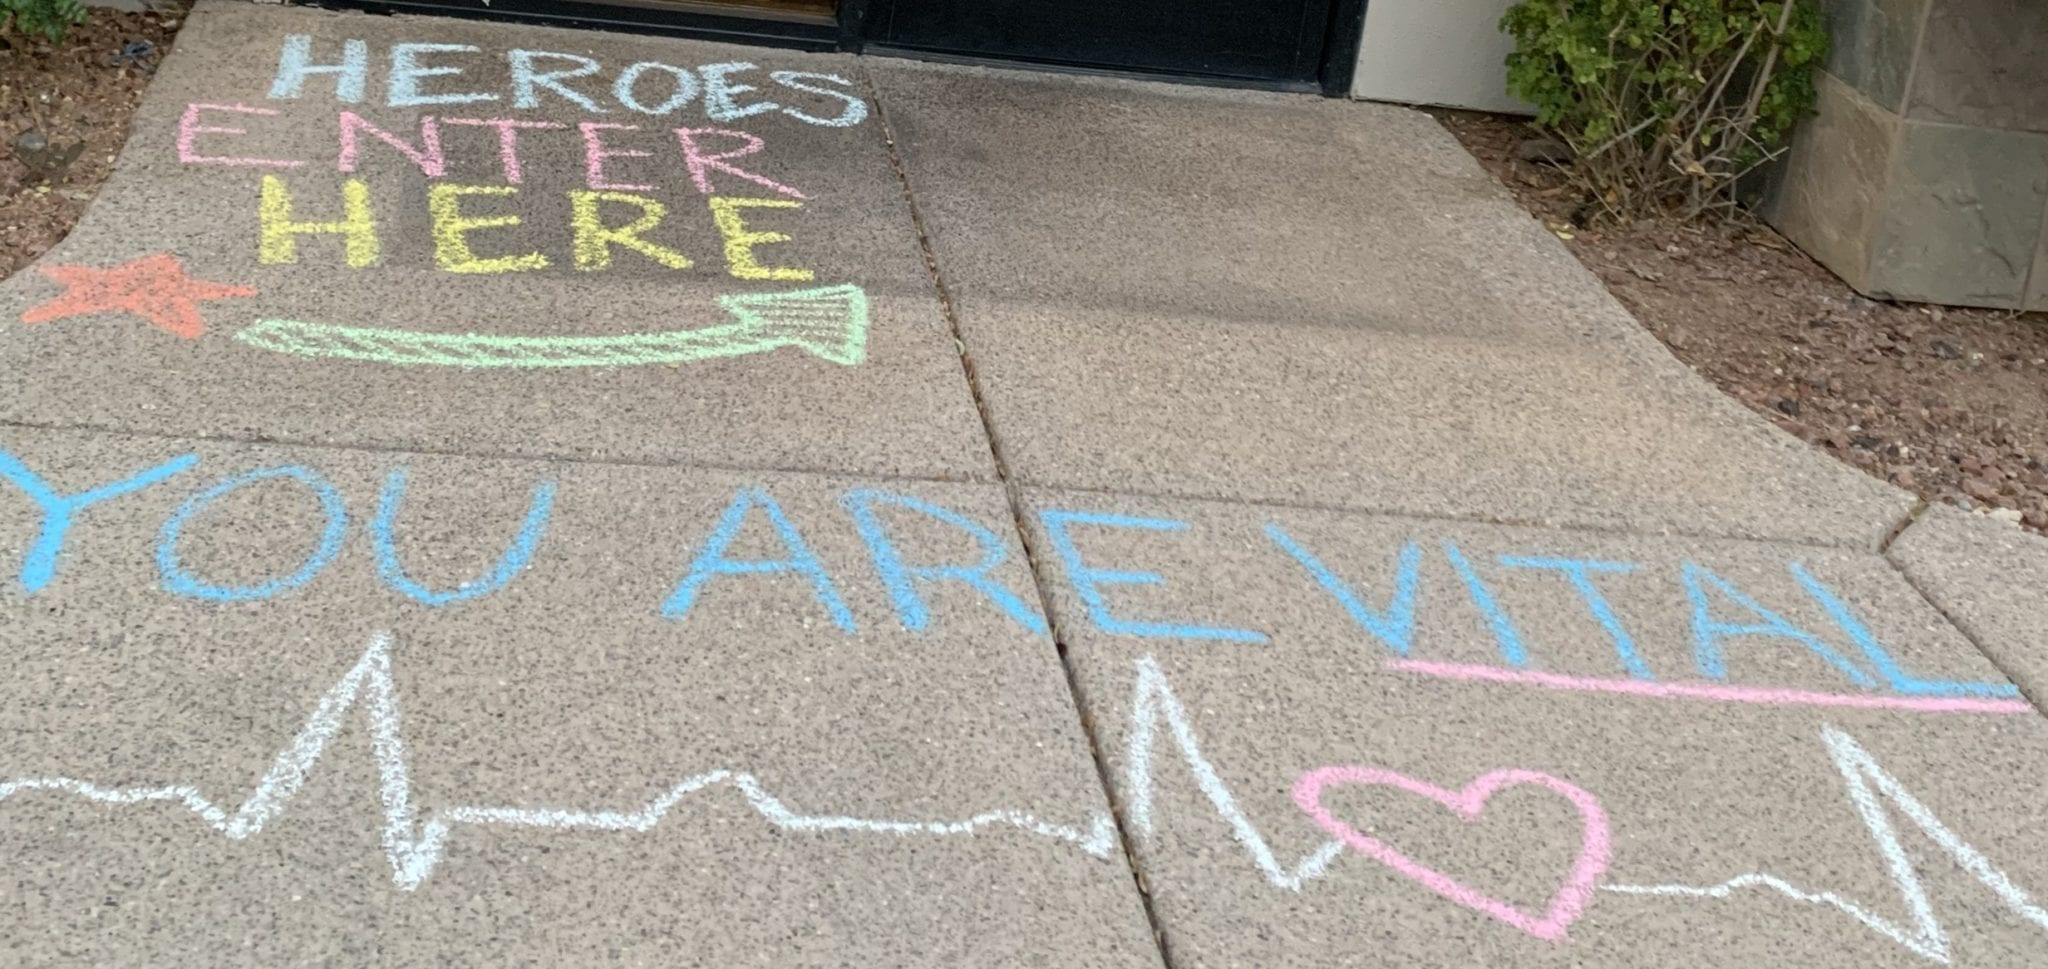 Sidewalk chalk expressing appreciation for healthcare workers